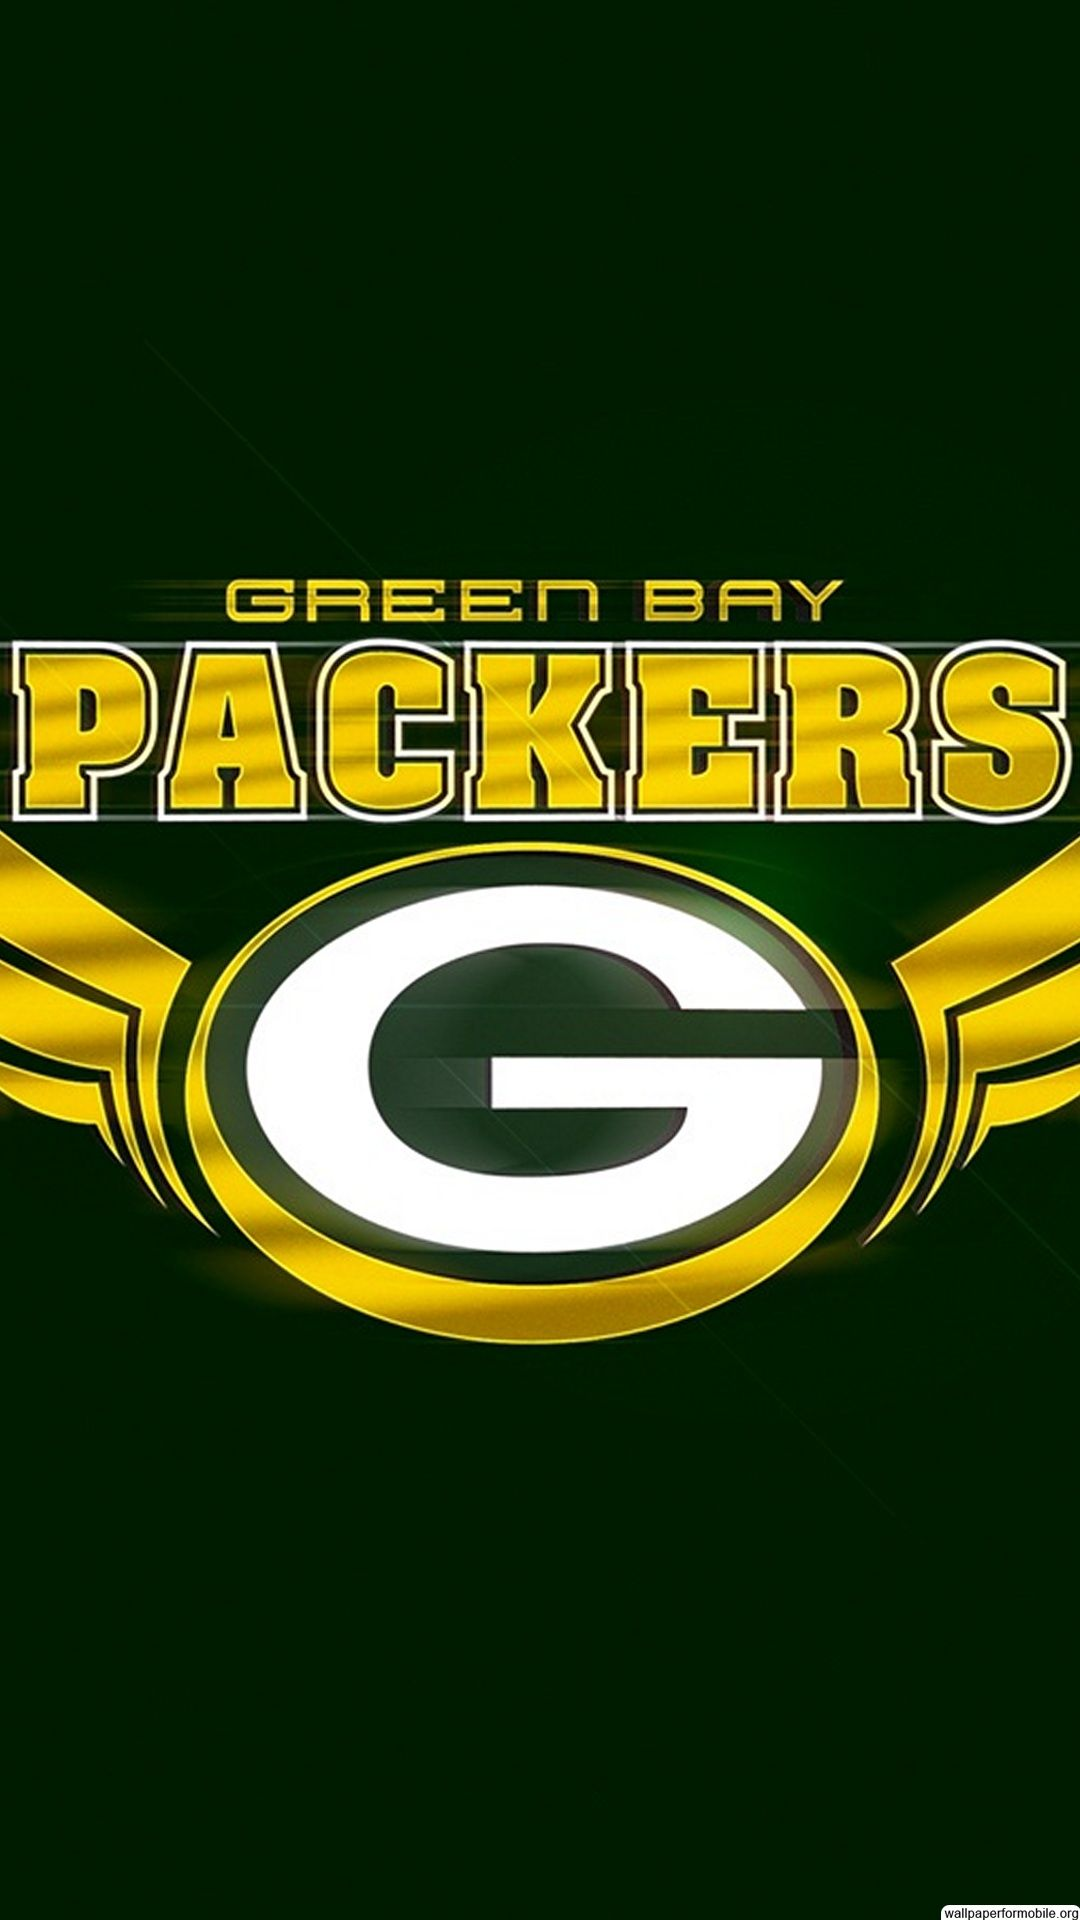 Wallpaper Of Green Bay Packers Wallpaper For Mobile Green Bay Packers Wallpaper Green Bay Packers Phone Wallpaper